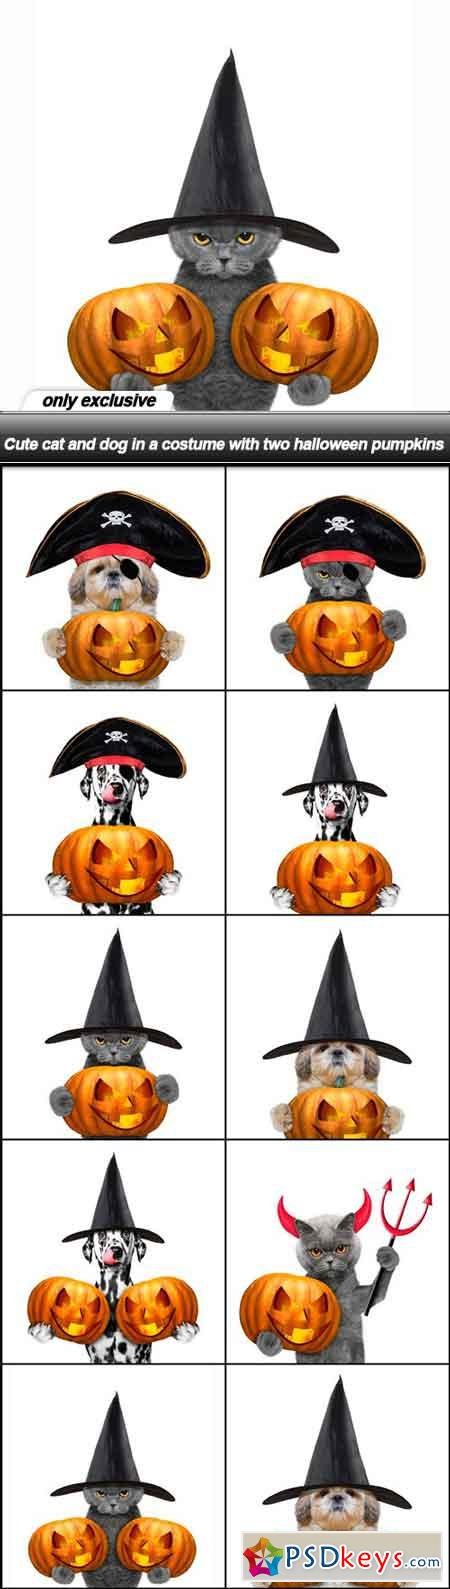 Cute cat and dog in a costume with two halloween pumpkins - 10 UHQ JPEG